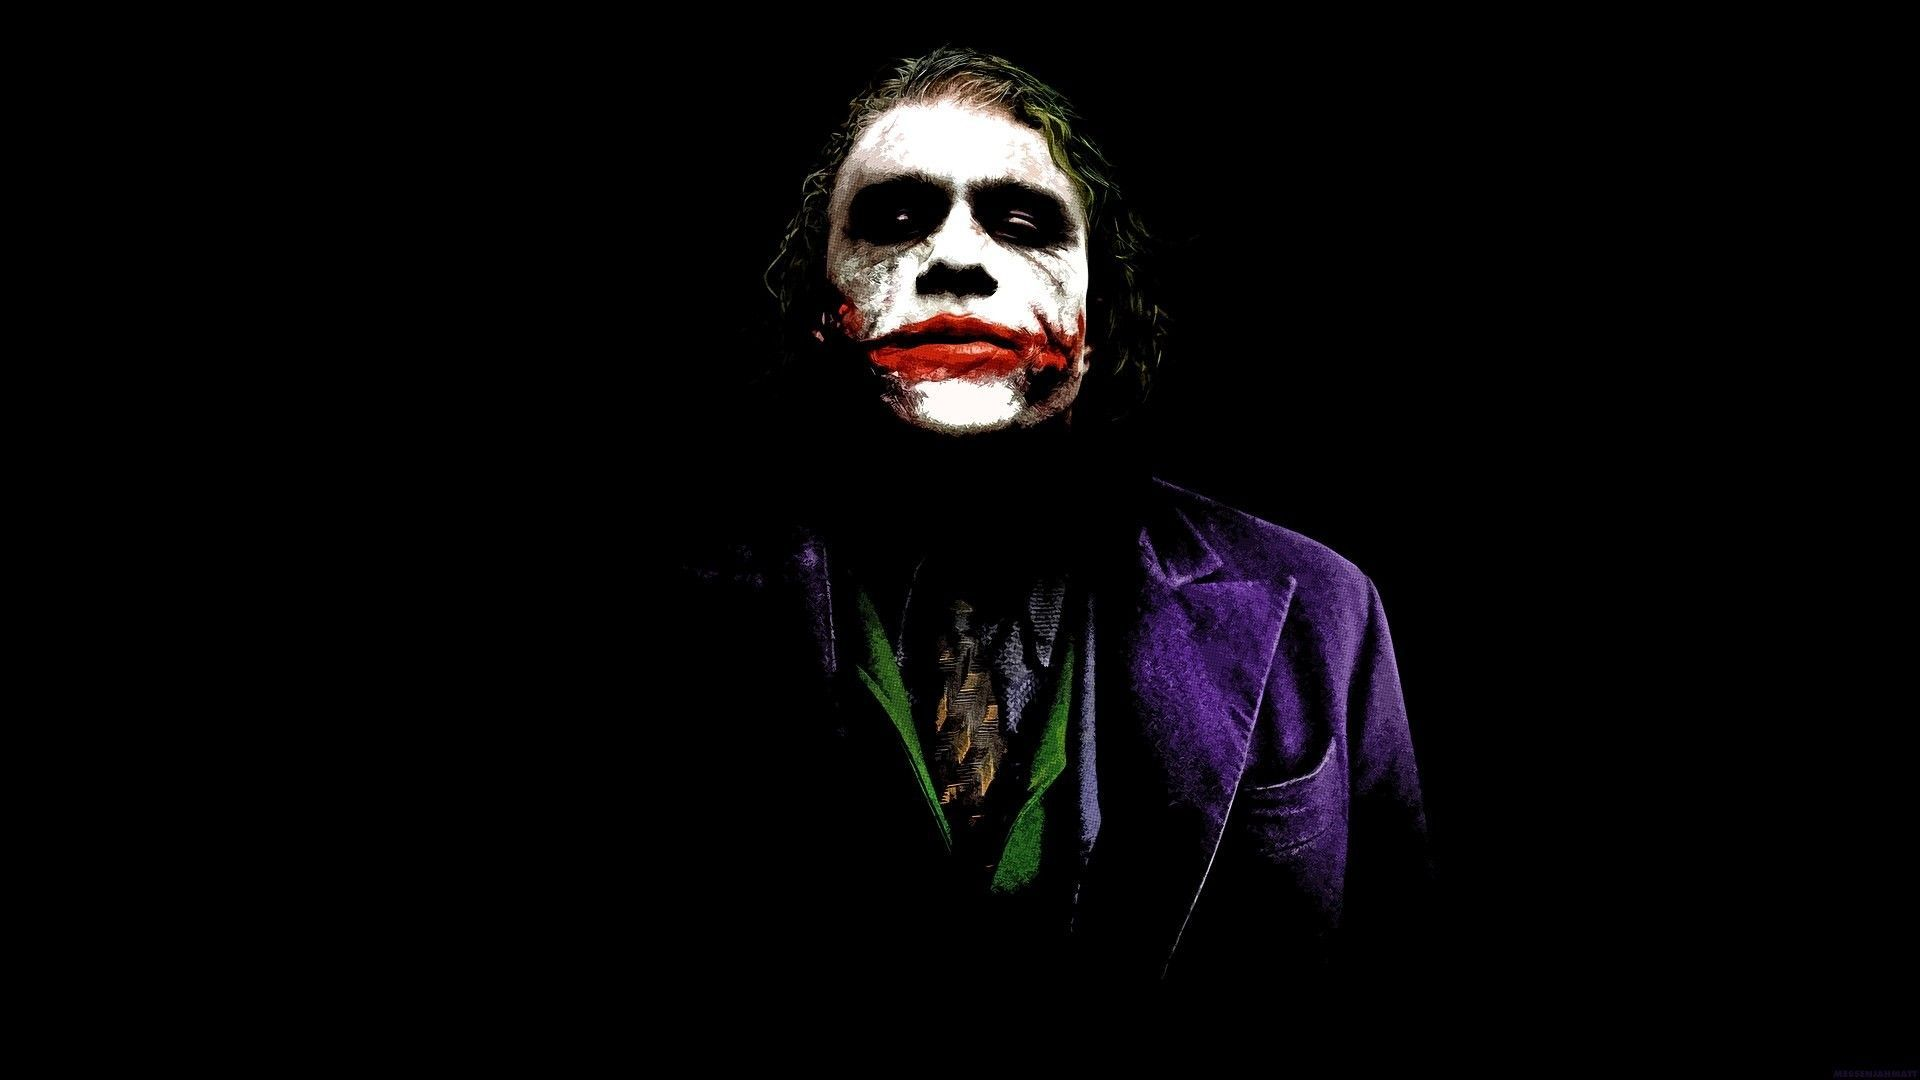 Image Result For Joker Mac Wallpaper Hd The Joker Joker Heath Ledger Joker